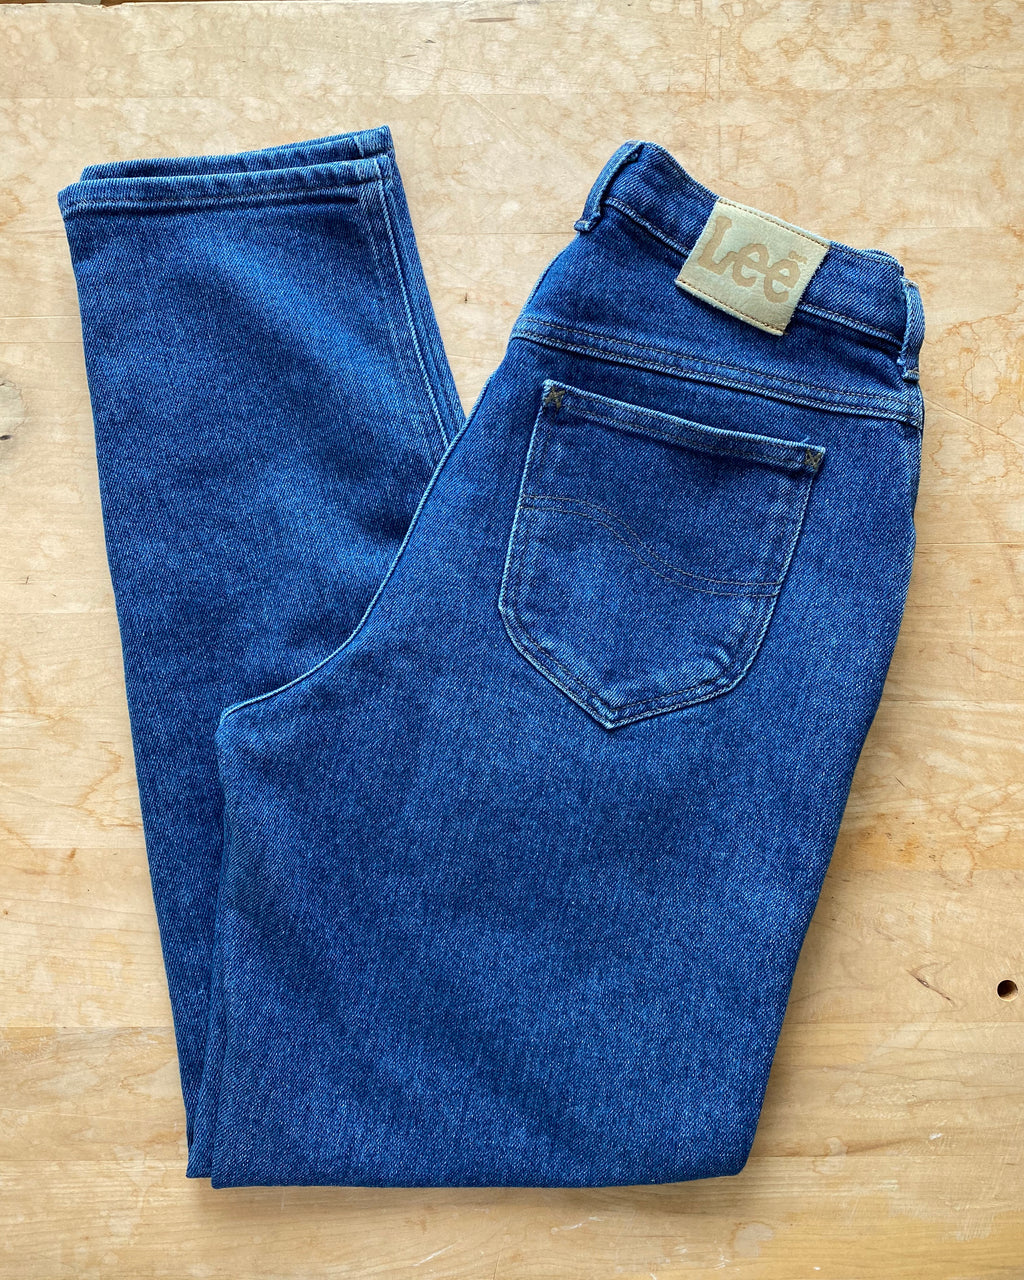 Vintage LEEs Made in USA Medium Wash Jeans size 29-30